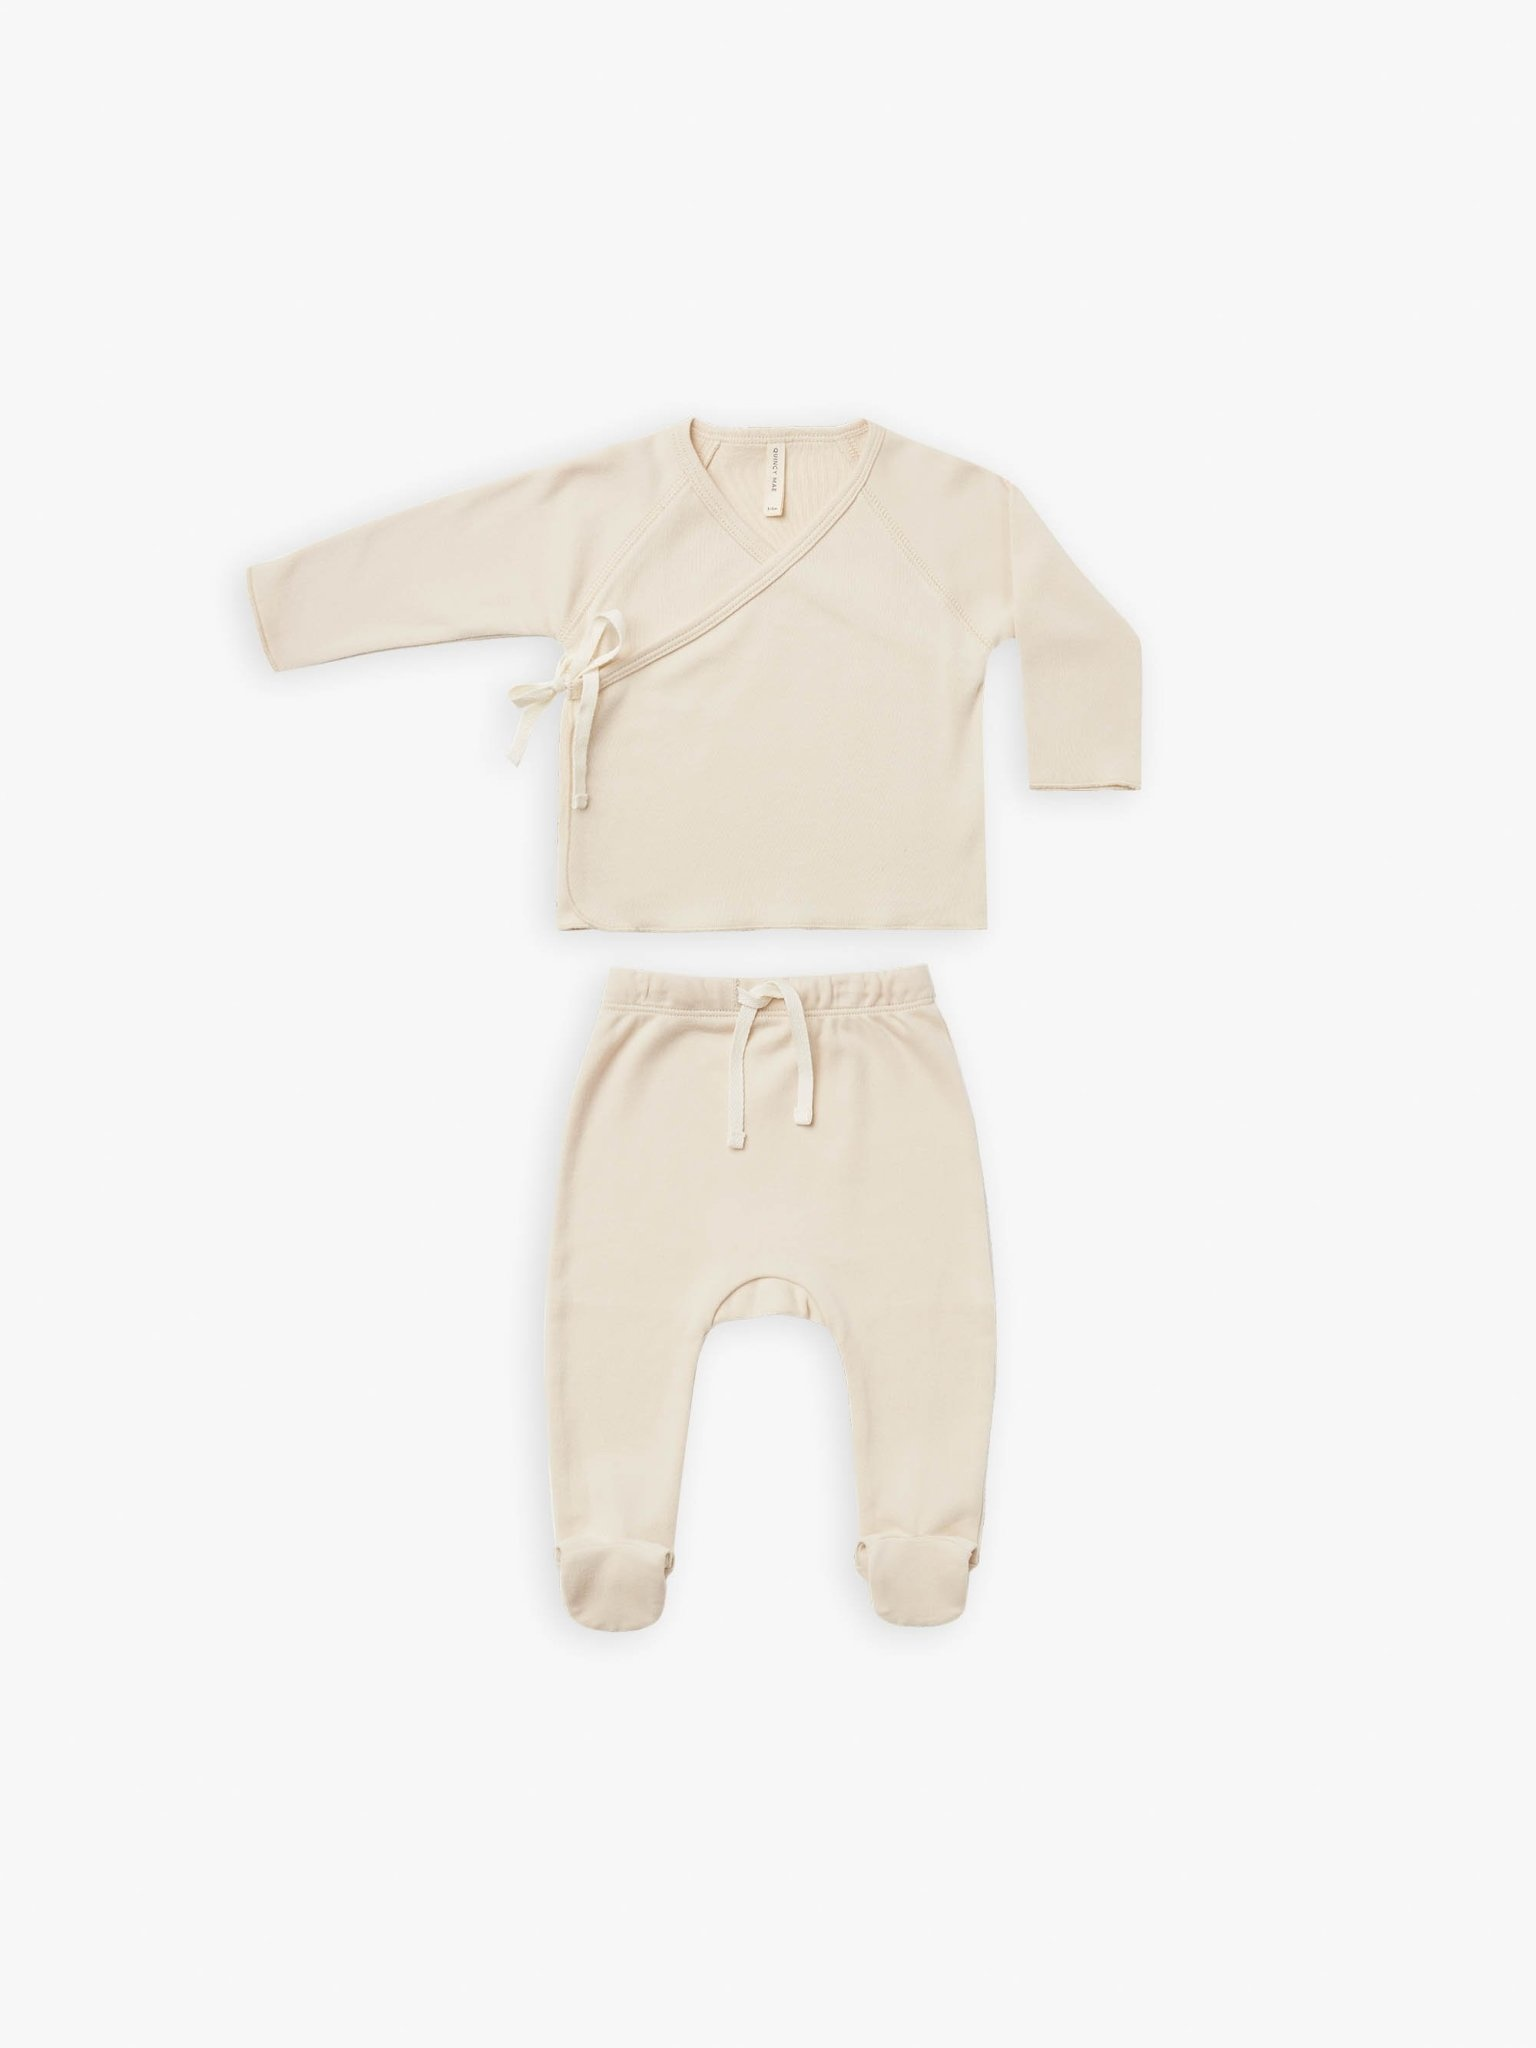 Quincy Mae Quincy Mae | Wrap Top + Pant Set Natural